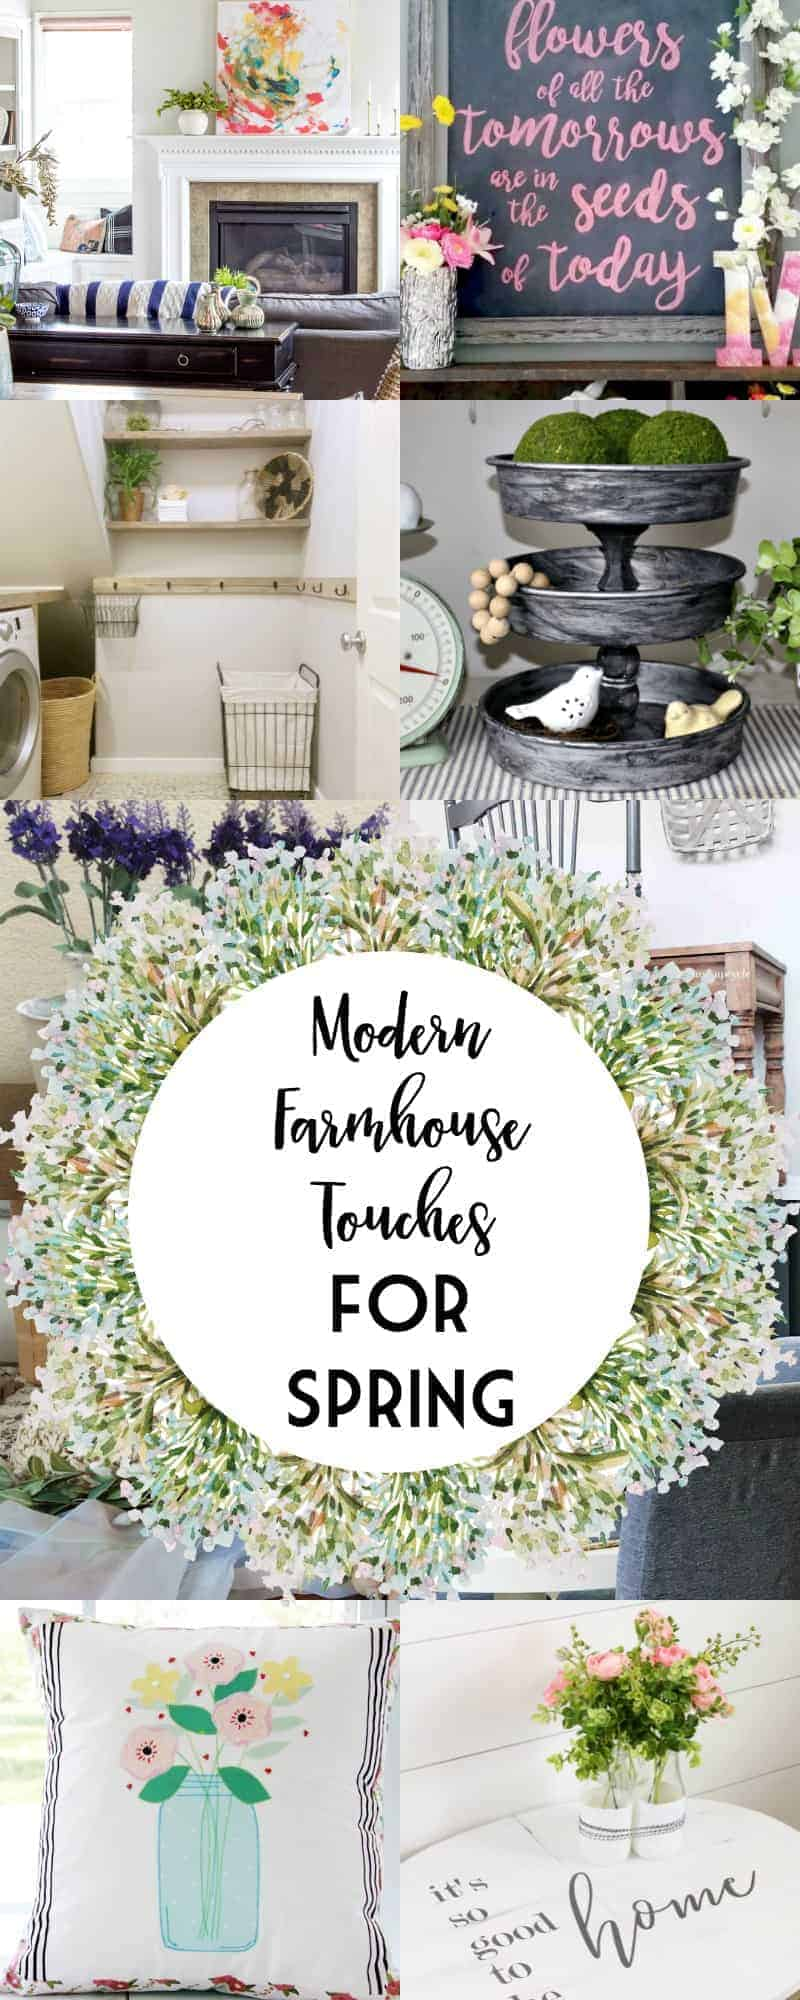 Long collage of 12 modern farmhouse touches for spring with overlay for Pinterest